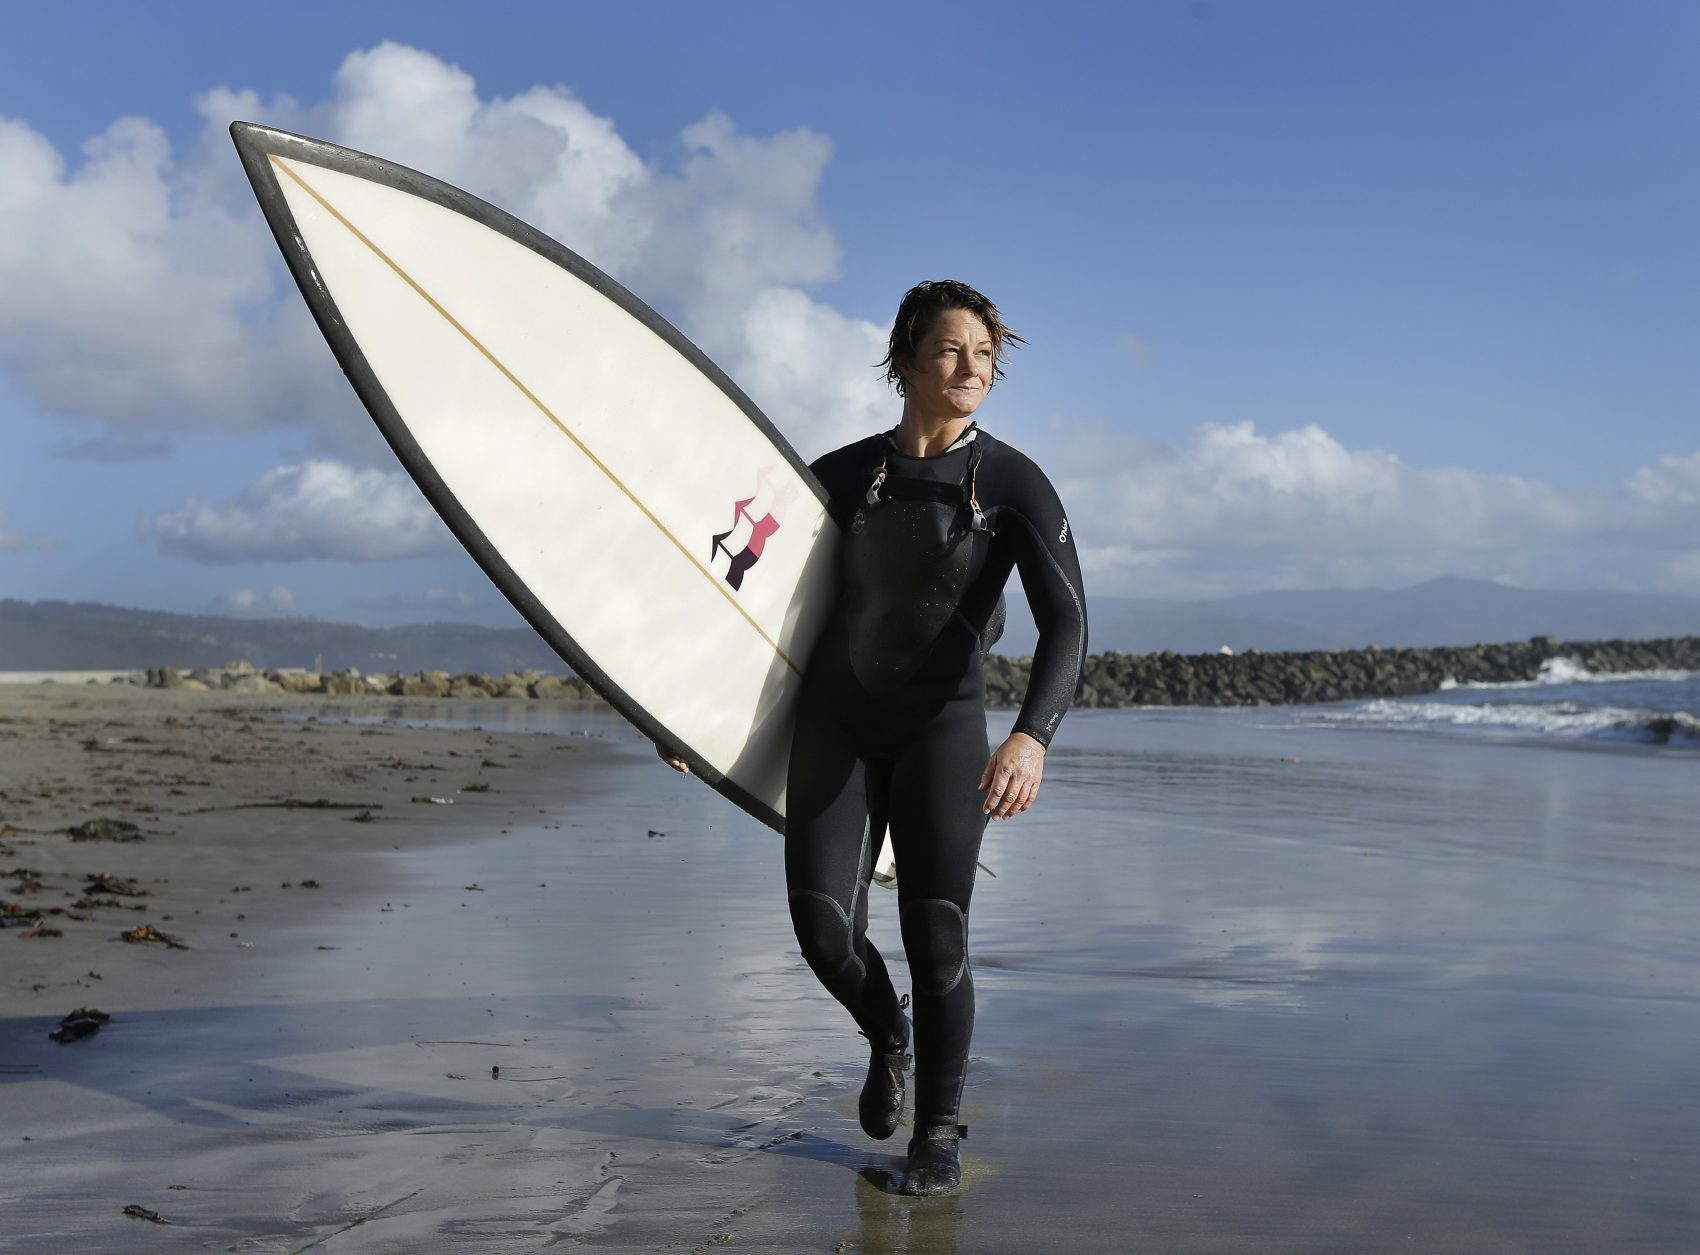 Bianca Valenti walks on the beach after surfing waves at Mavericks, Friday, Dec. 4, 2015, in Half Moon Bay, Calif. (Ben Margot/AP)